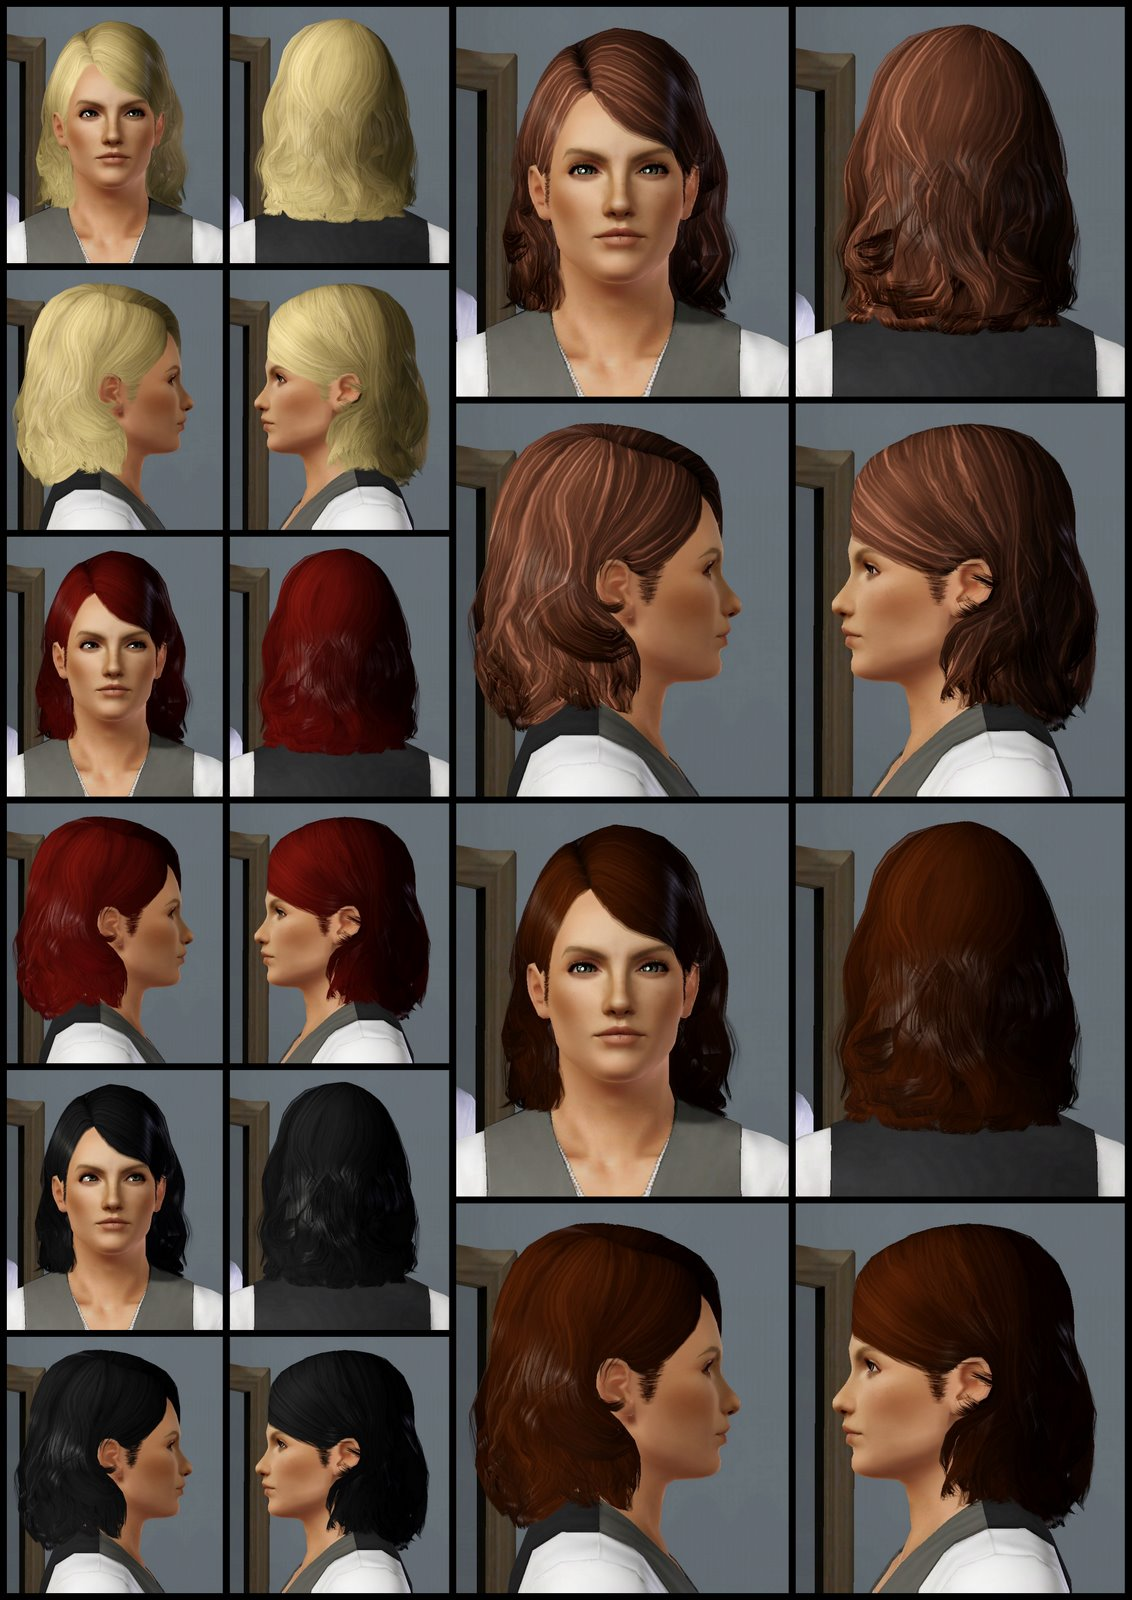 The Sims 3 Store: Hair Showroom: The Fliggs Fluff